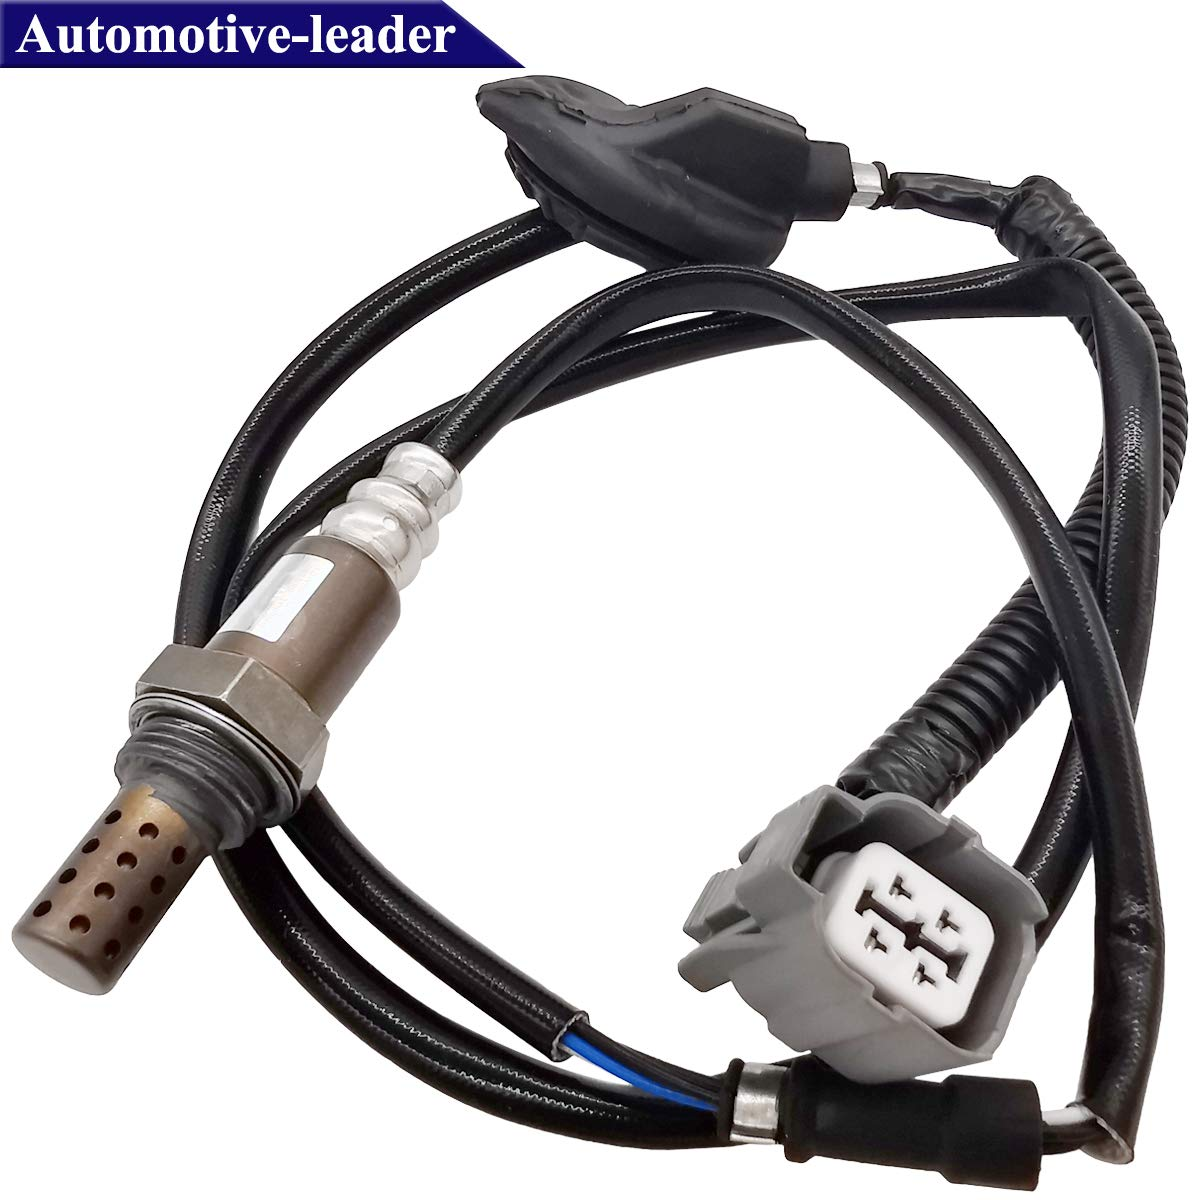 13704 Exc Calif Automotive-leader 234-4797 Downstream Oxygen O2 Sensor for 2003 2004 2005 2006 2007 Honda Accord LX 2.4L l4 Only fit